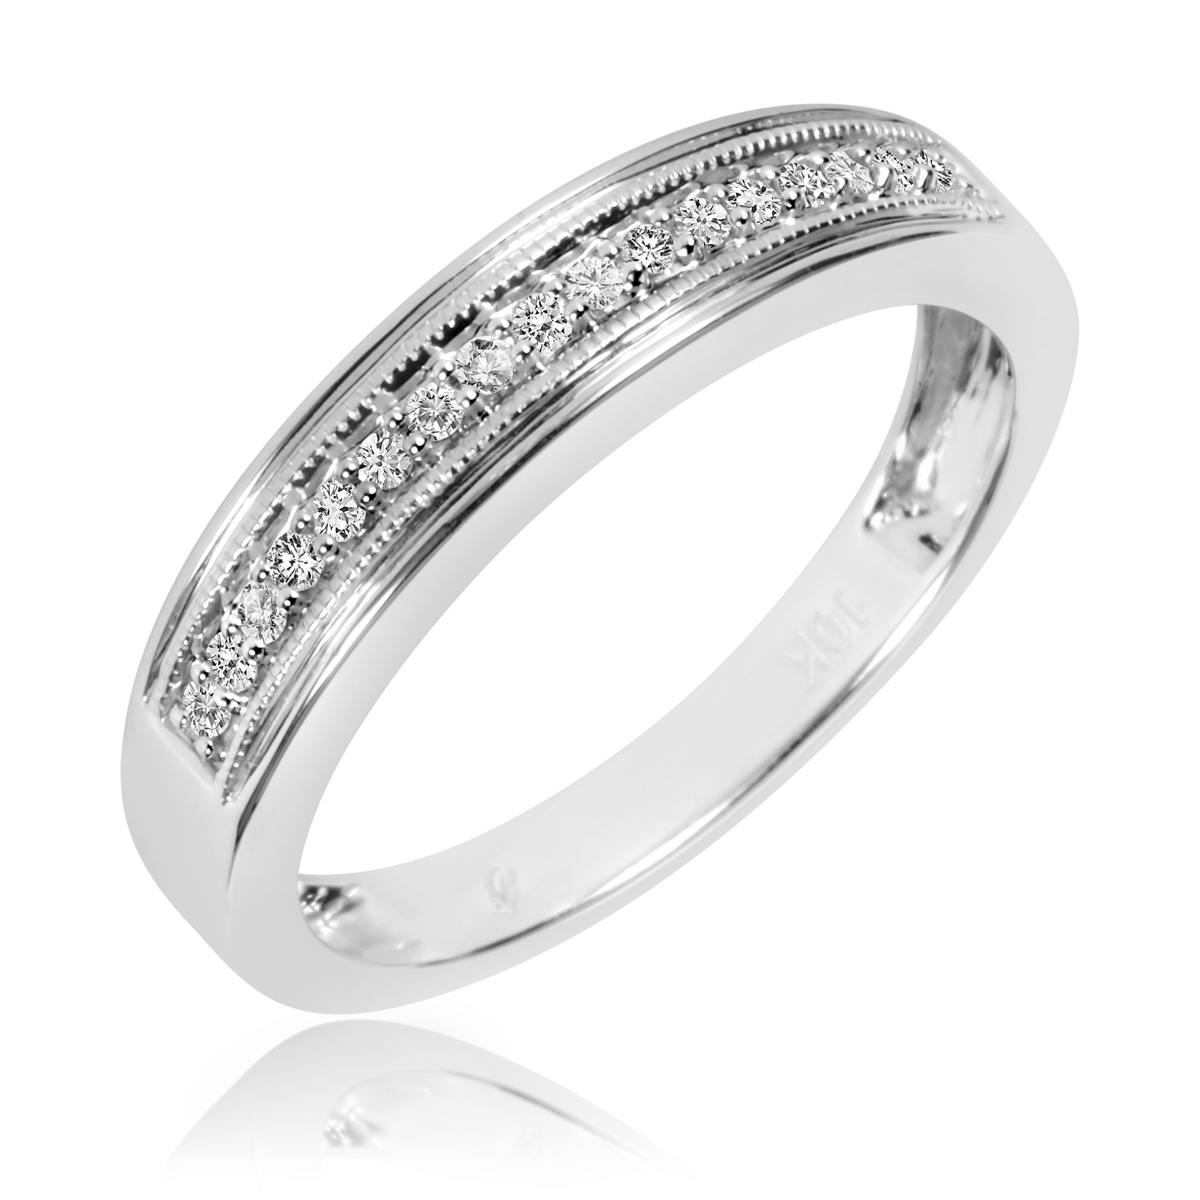 1 4 ct t w his and hers wedding band set 10k